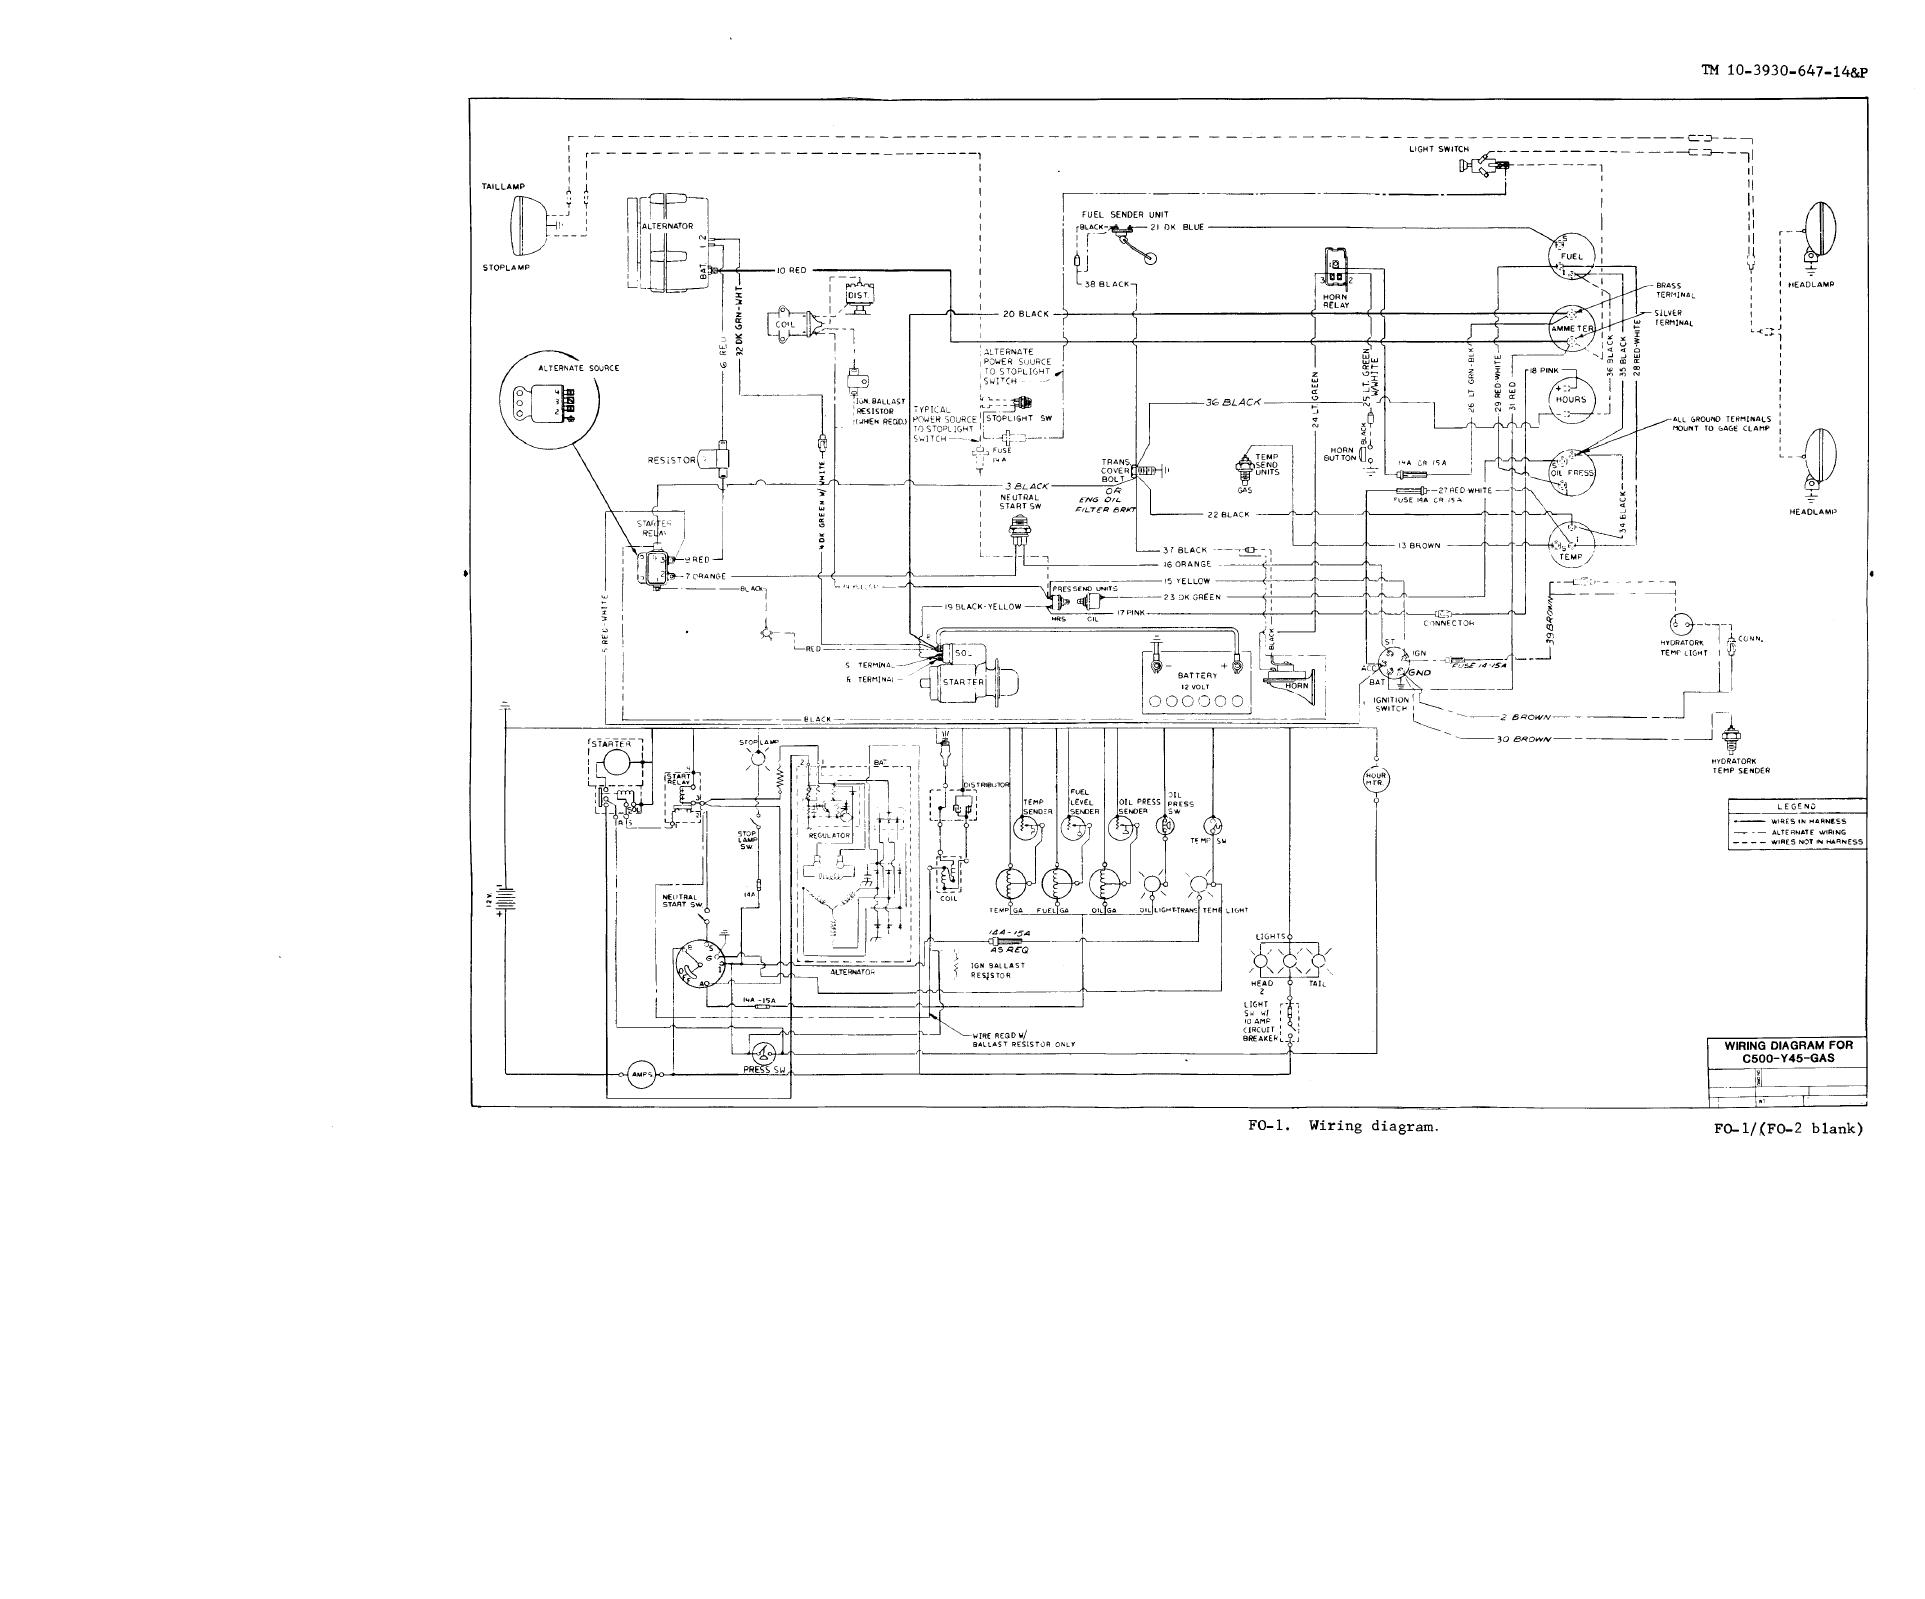 clark forklift fuse box location free download  u2022 oasis